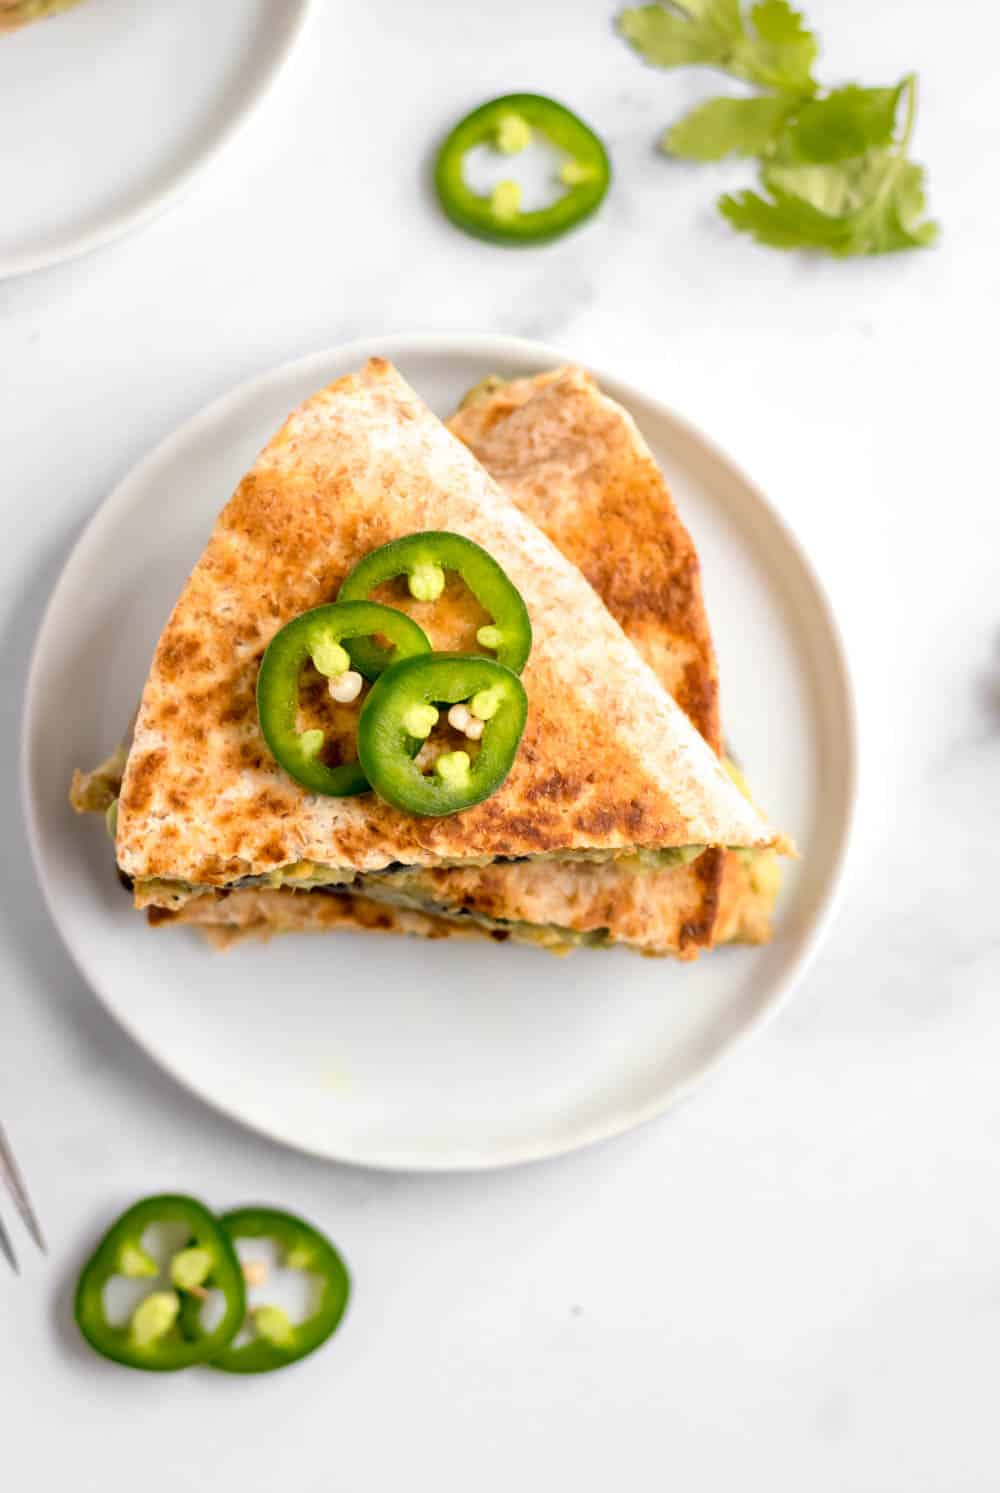 Black bean and avocado quesadilla on white plate with jalapeno.